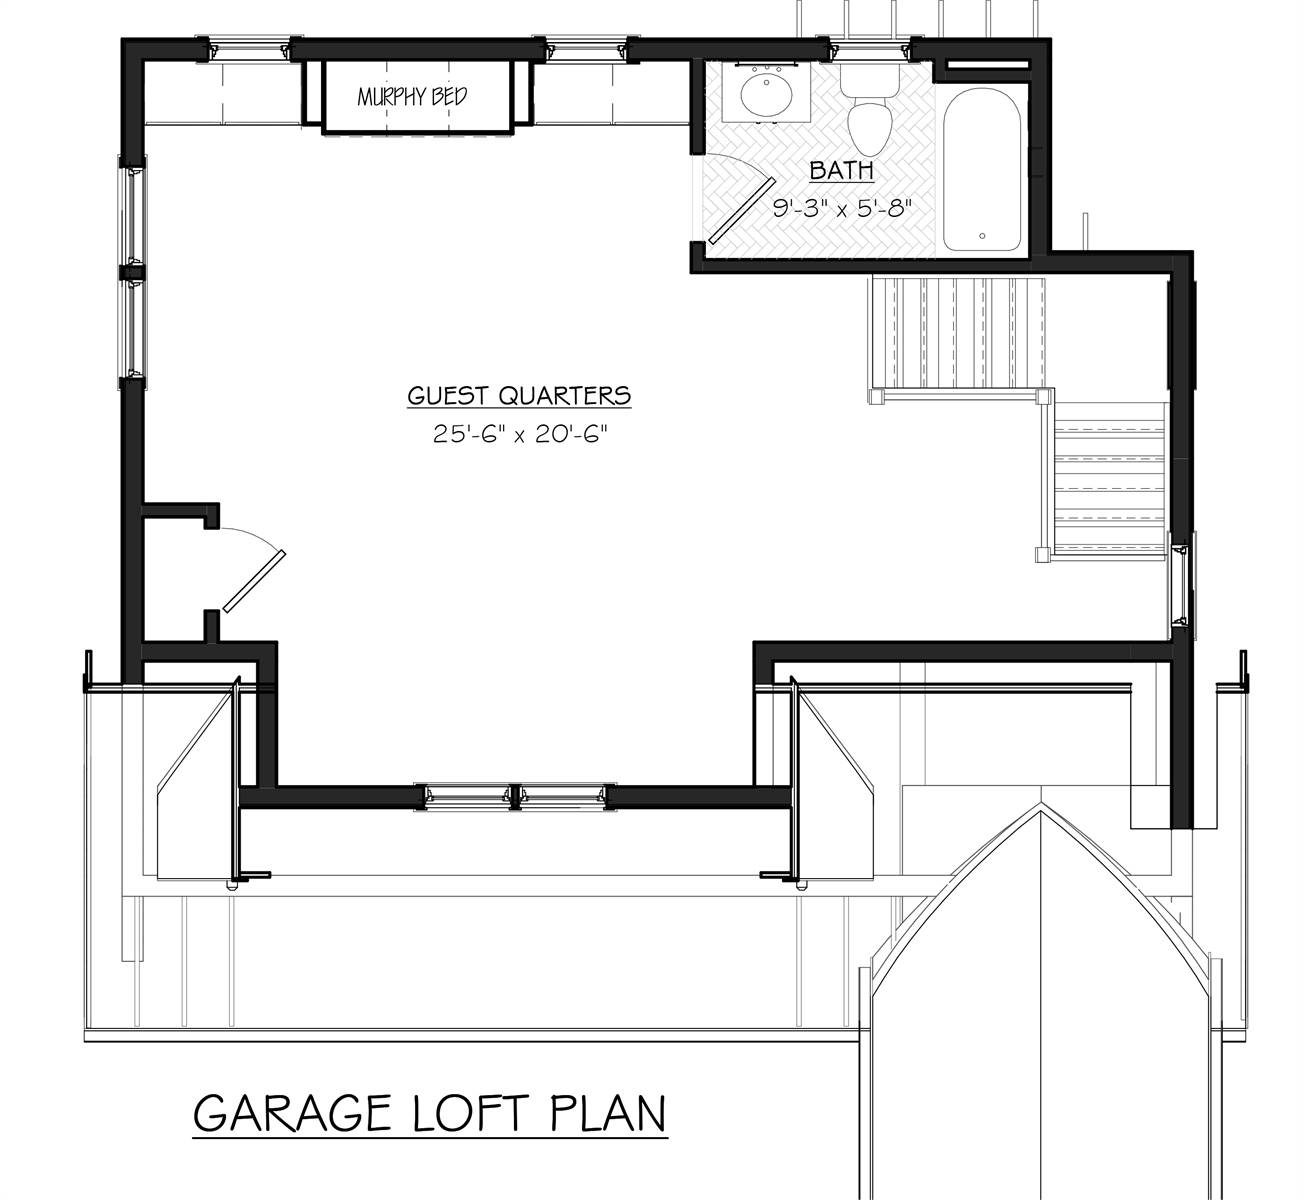 Garage Loft Floor Plan